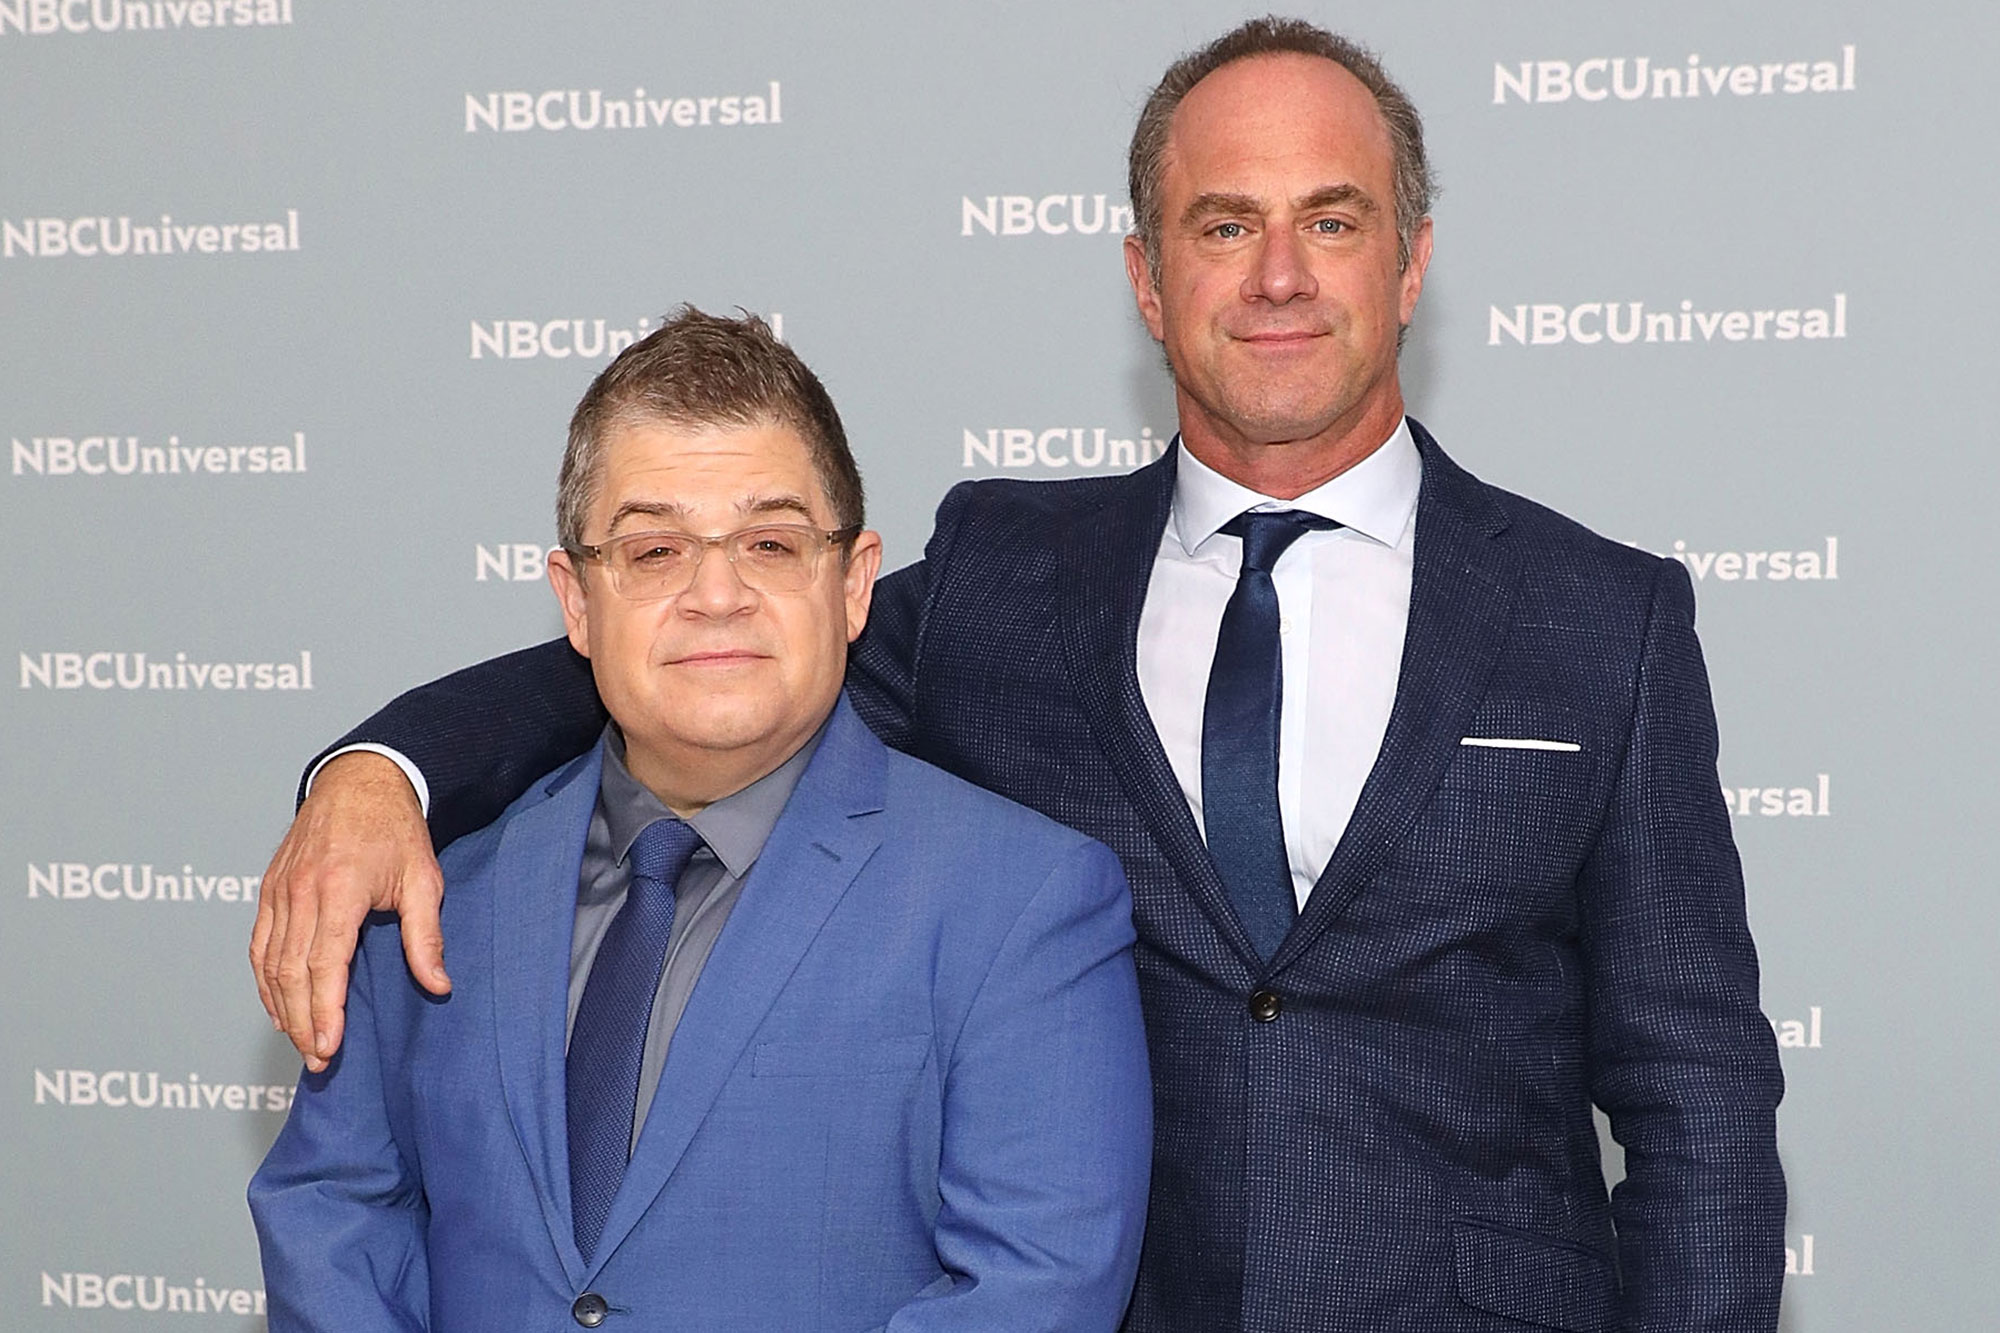 Patton Oswalt and Christopher Meloni